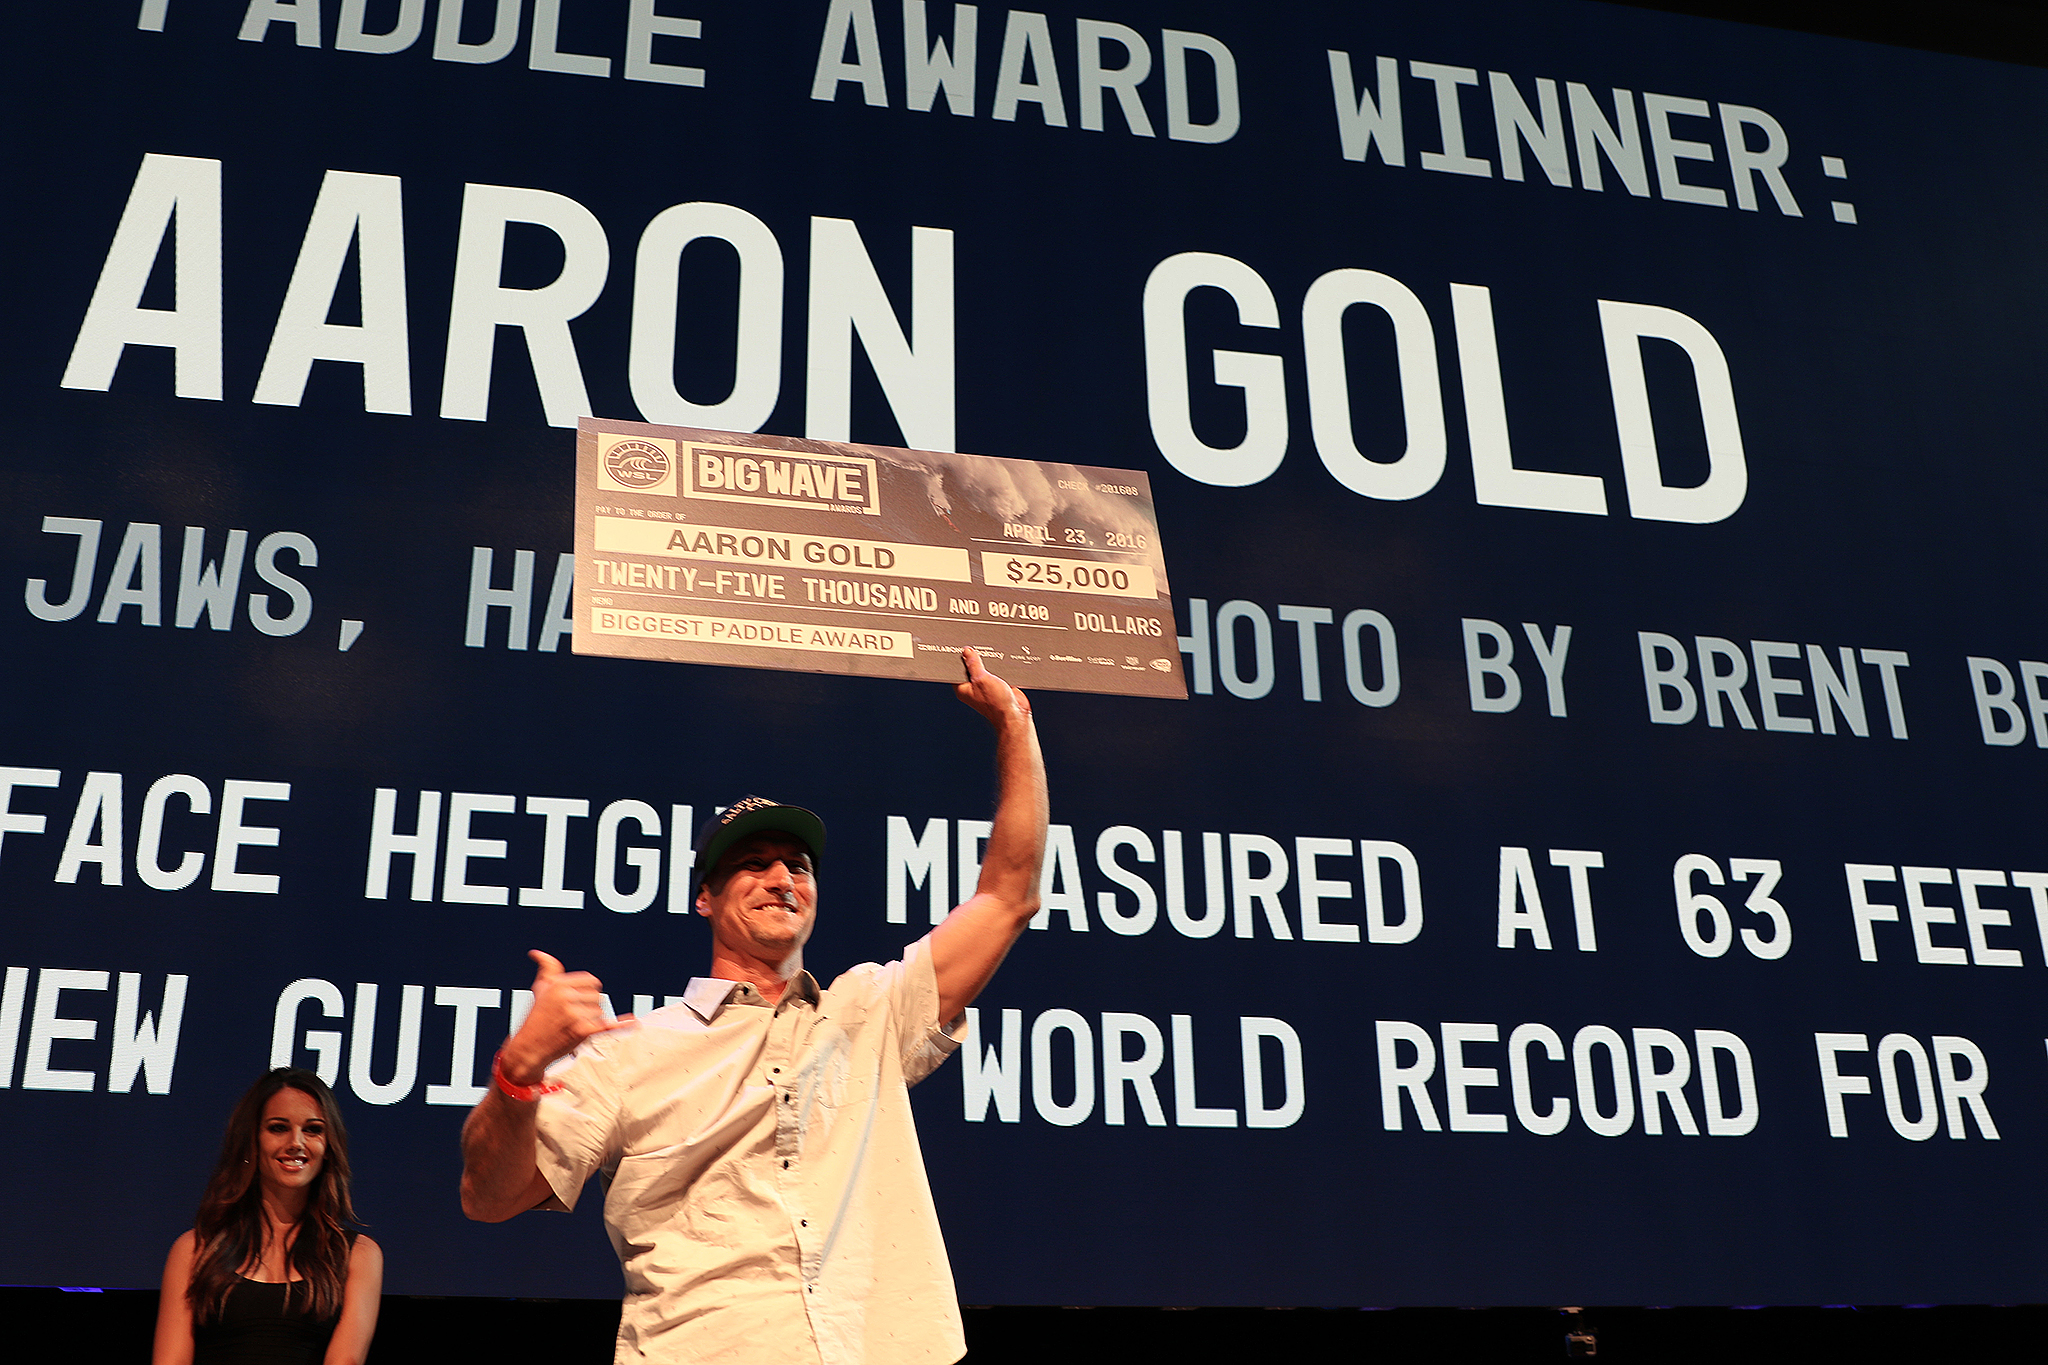 Aaron Gold accepting his award. Photo: WSL